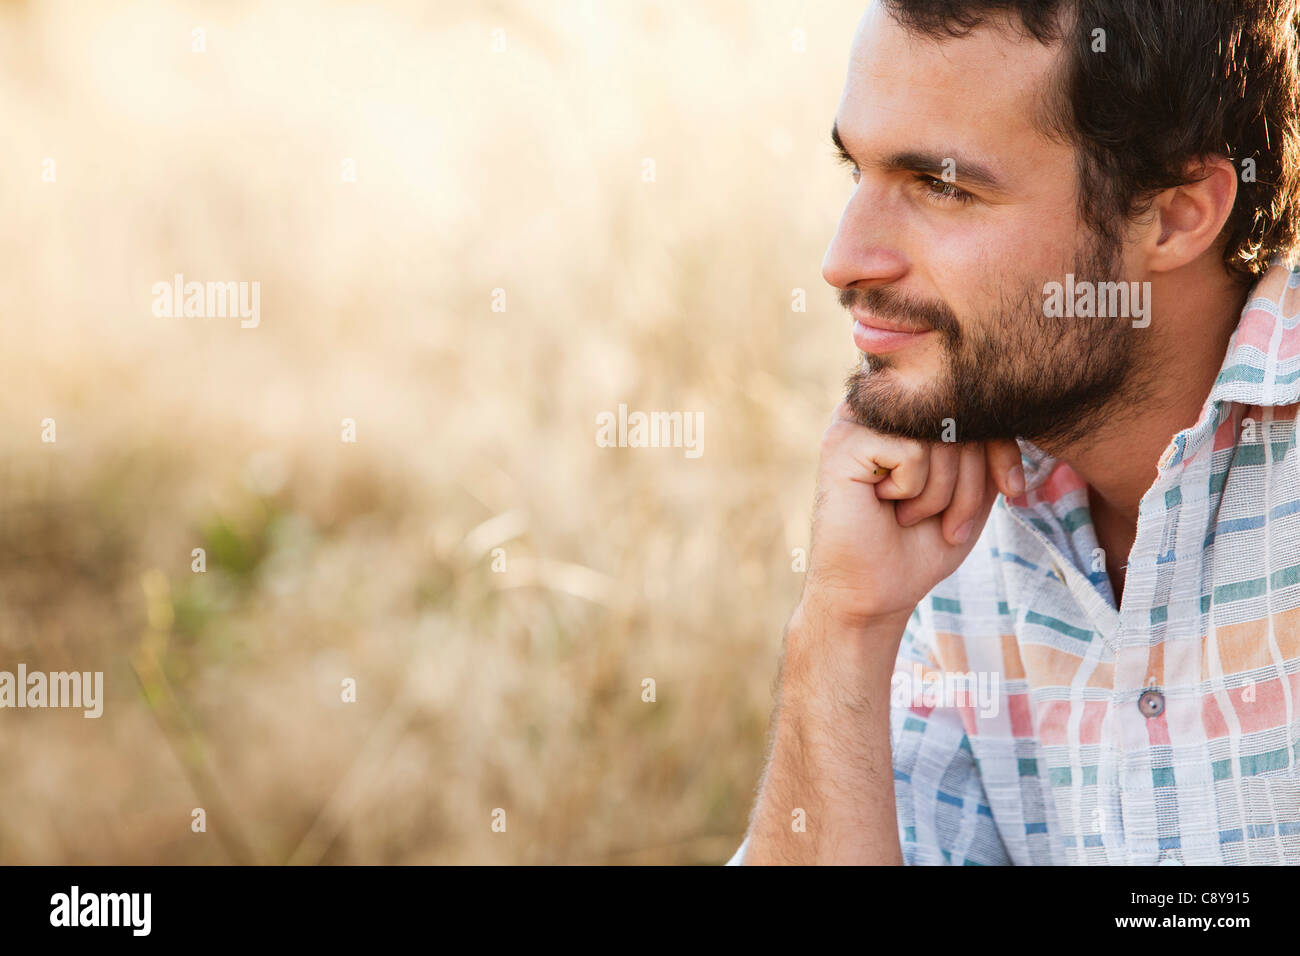 portrait of young man in front of field - Stock Image